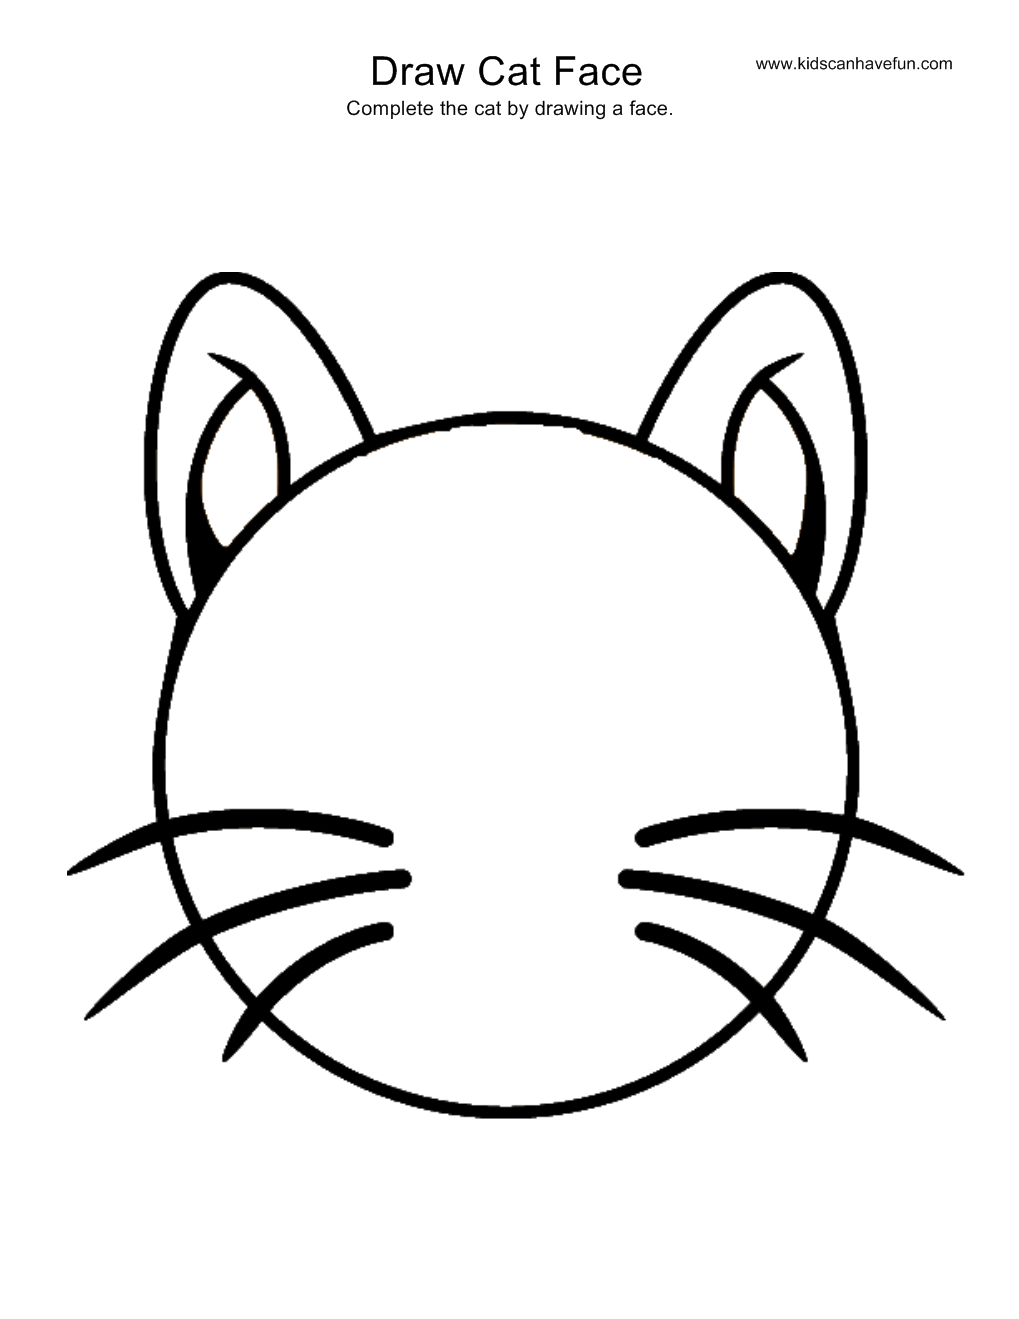 Draw Cat Face Activity More Drawing Pages Of Animals Sports